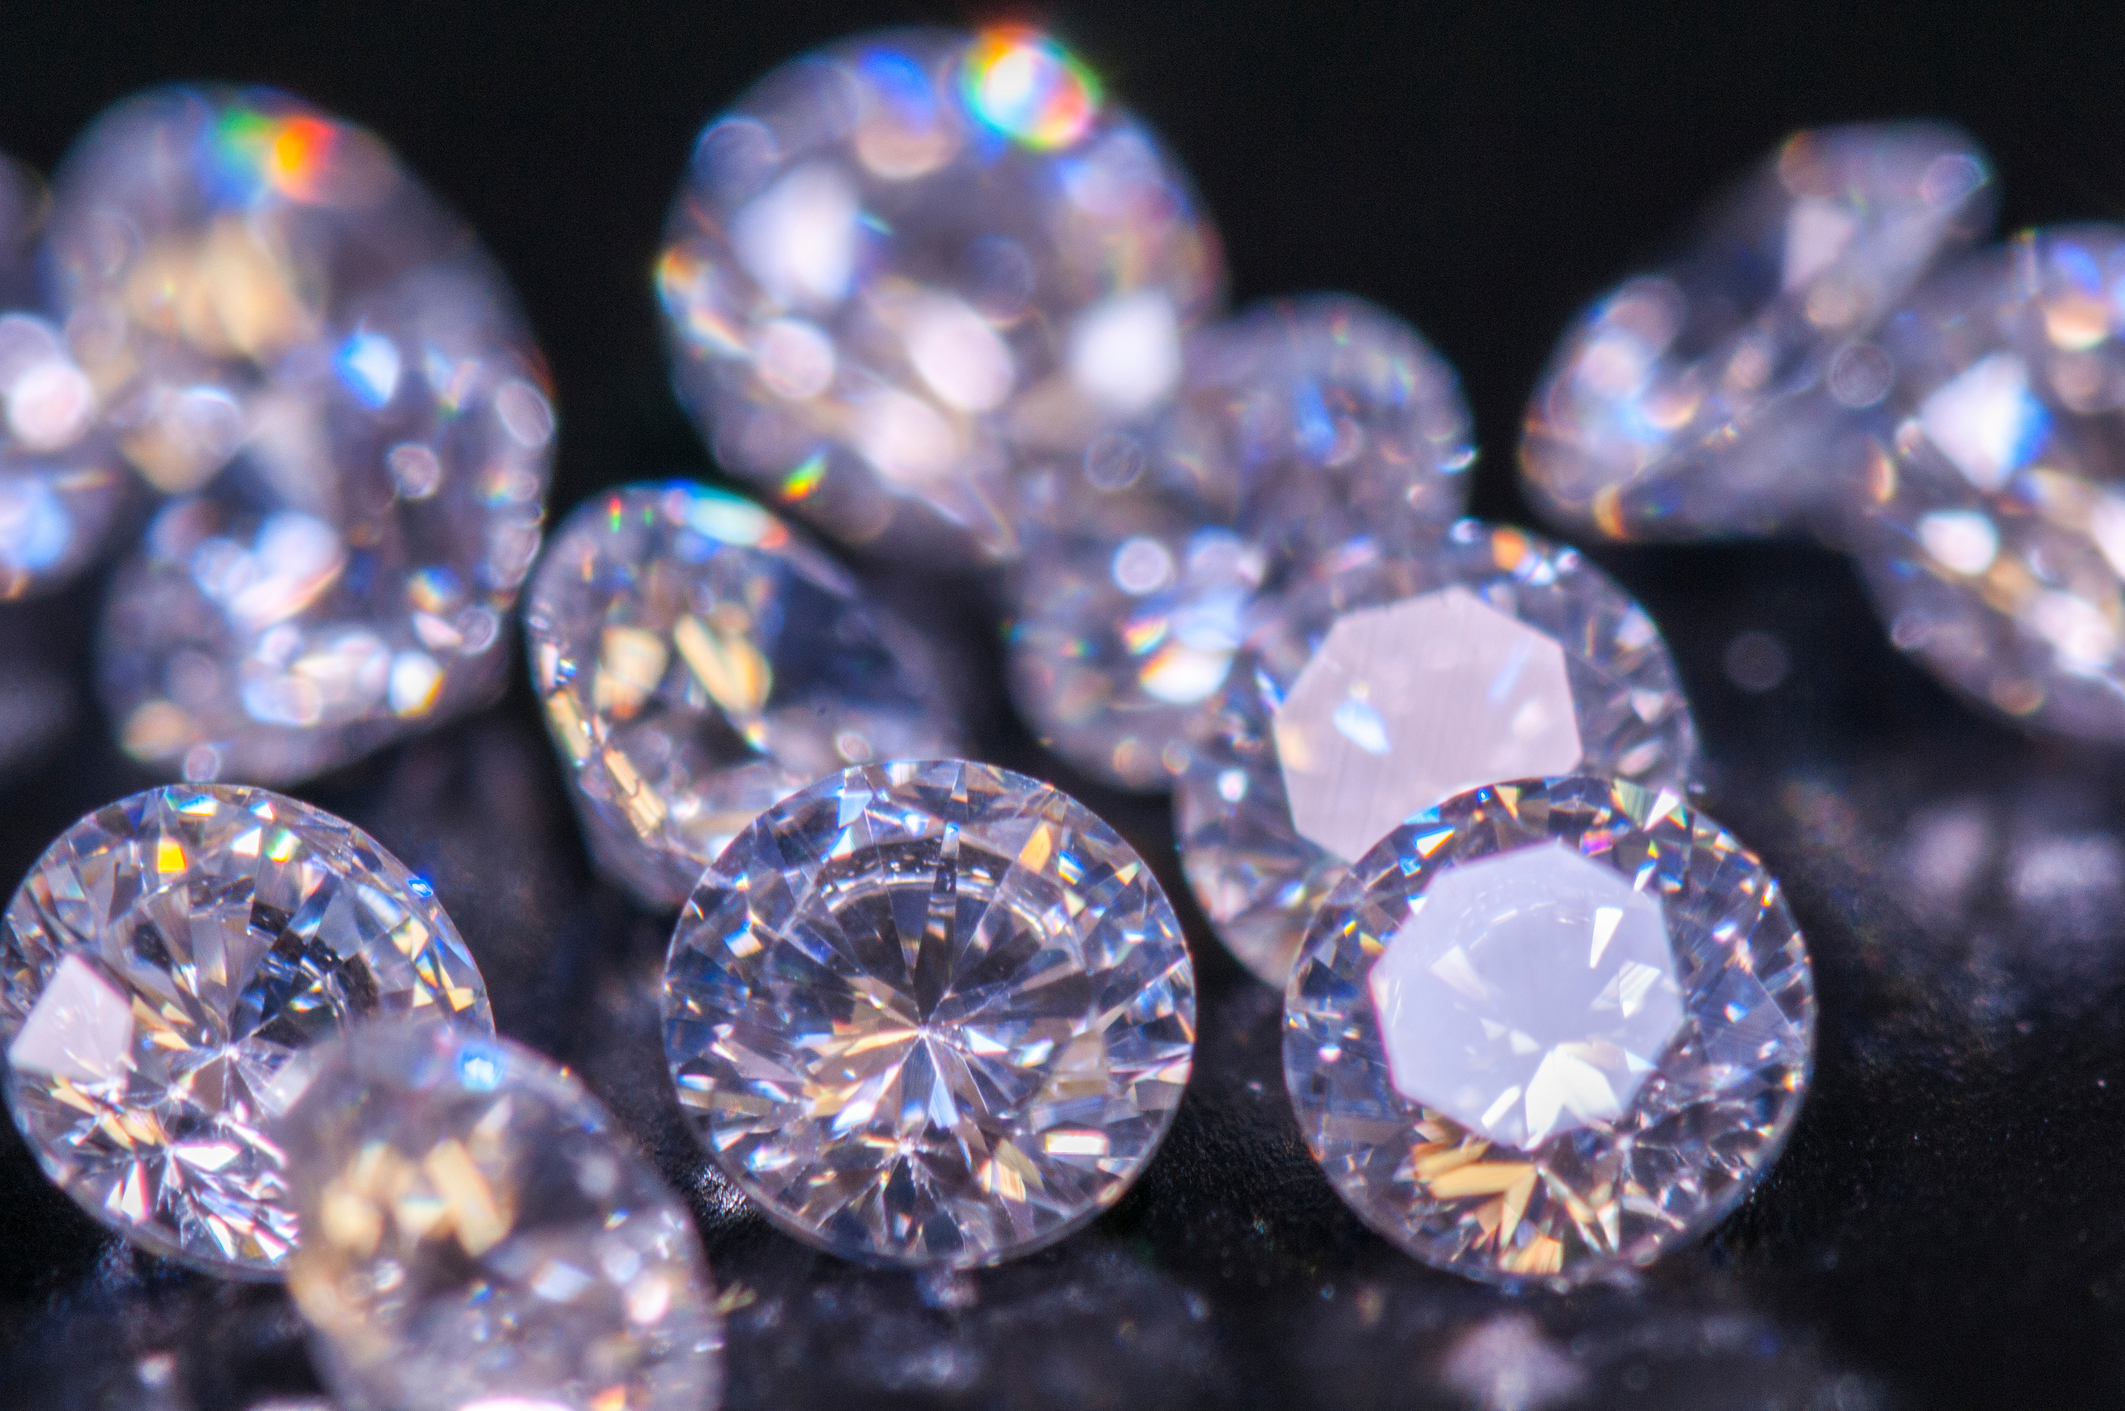 World's largest diamond miner De Beers to sell synthetic stones